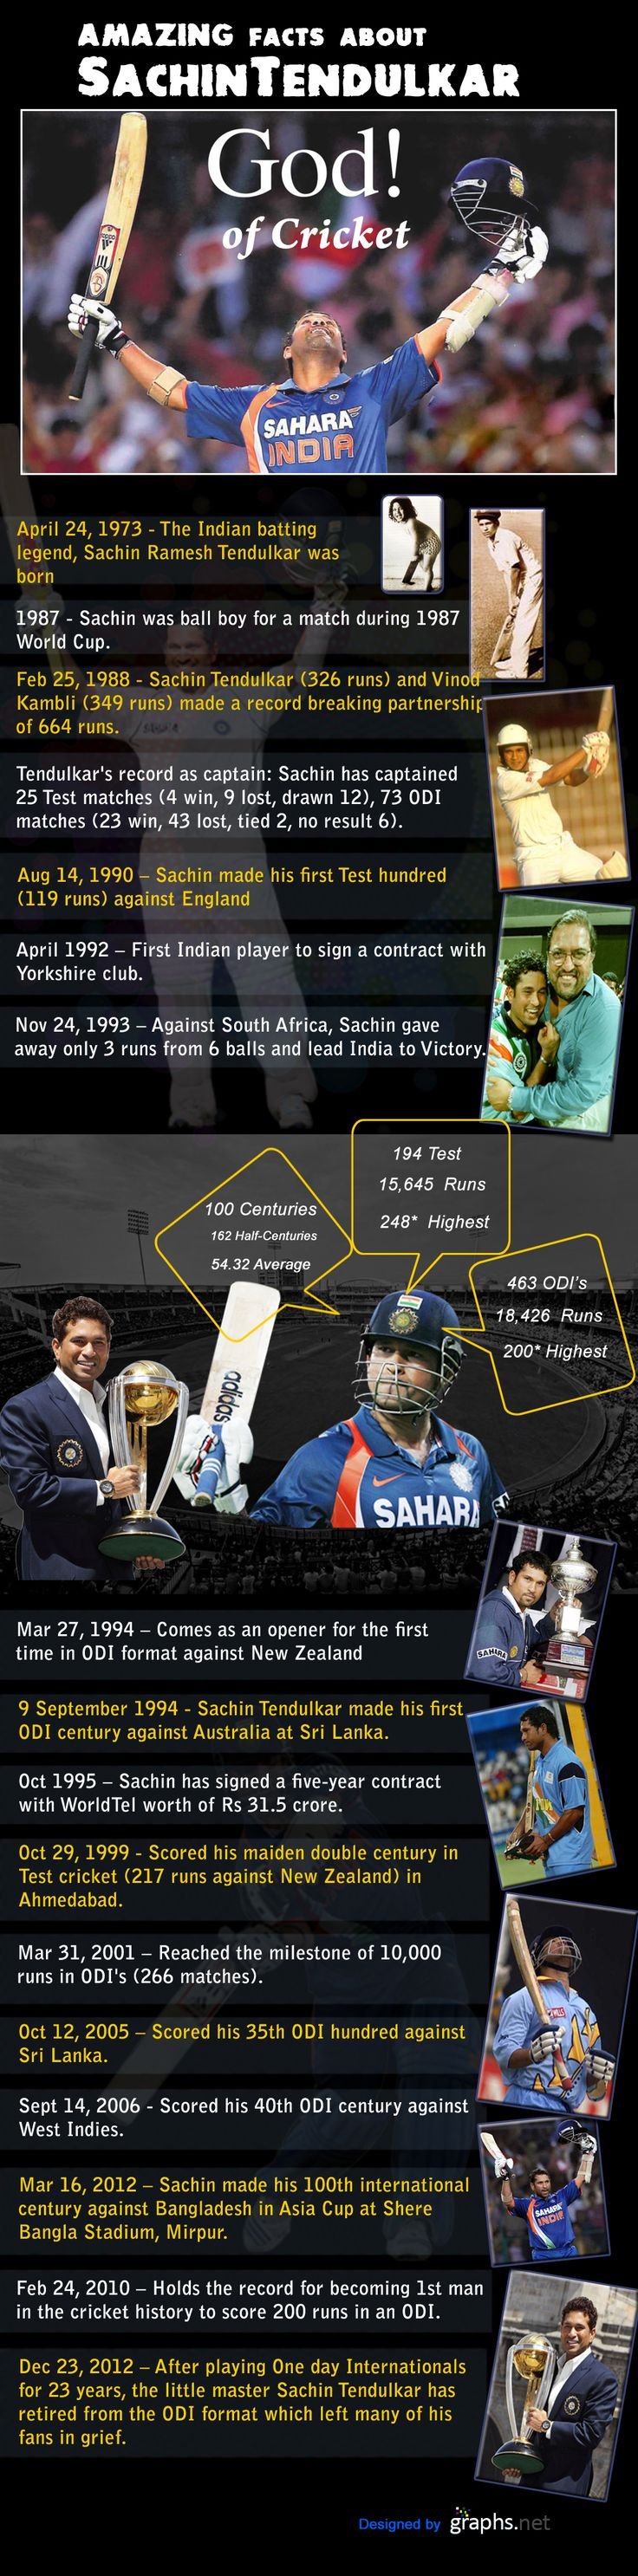 Happy Birthday to the GOD of Cricket, the Master Blaster, the Mumbai Indian .... SACHIN TENDULKAR. Happy Moments. Keep Rocking.